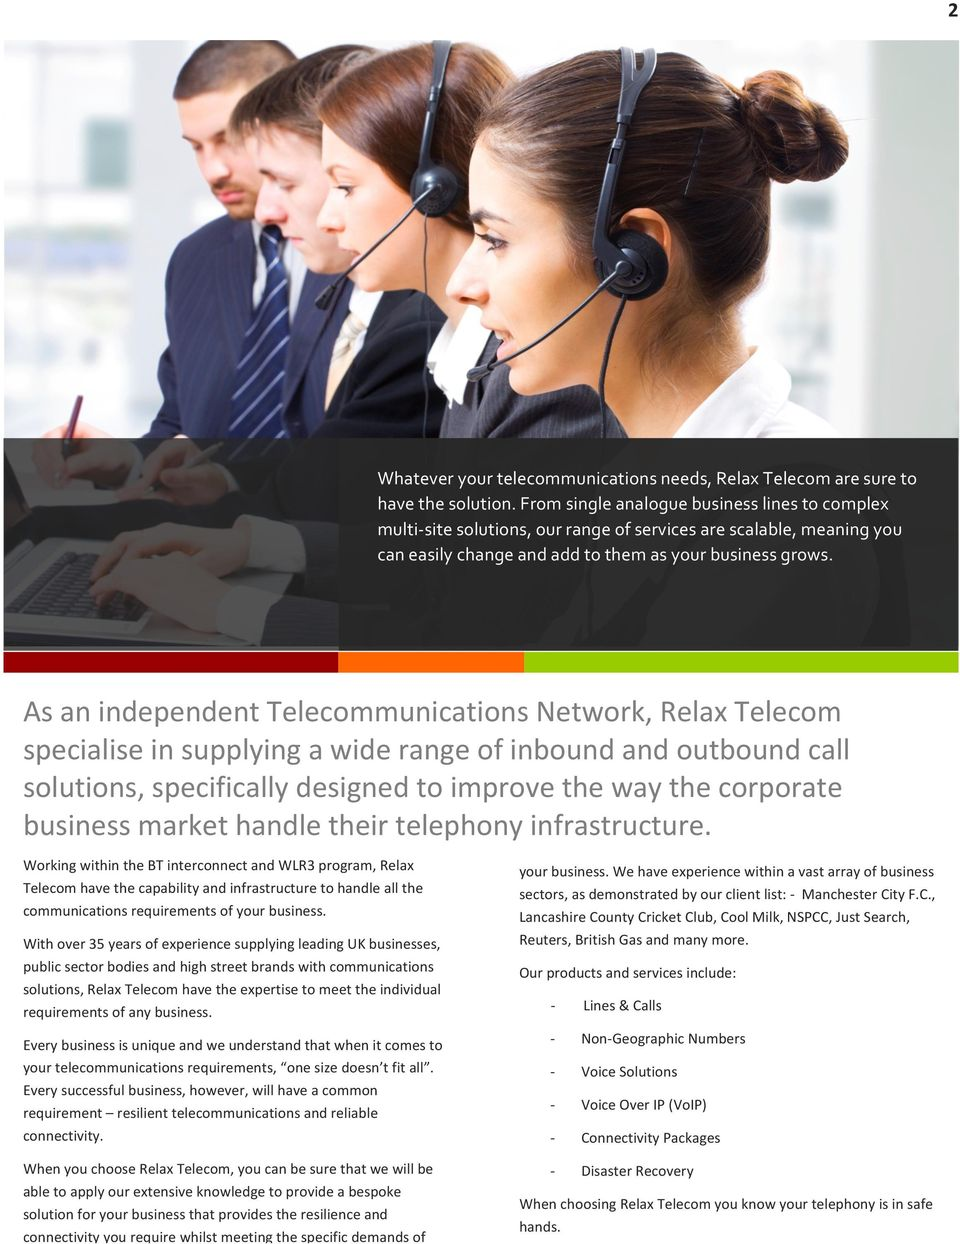 As an independent Telecommunications Network, Relax Telecom specialise in supplying a wide range of inbound and outbound call solutions, specifically designed to improve the way the corporate